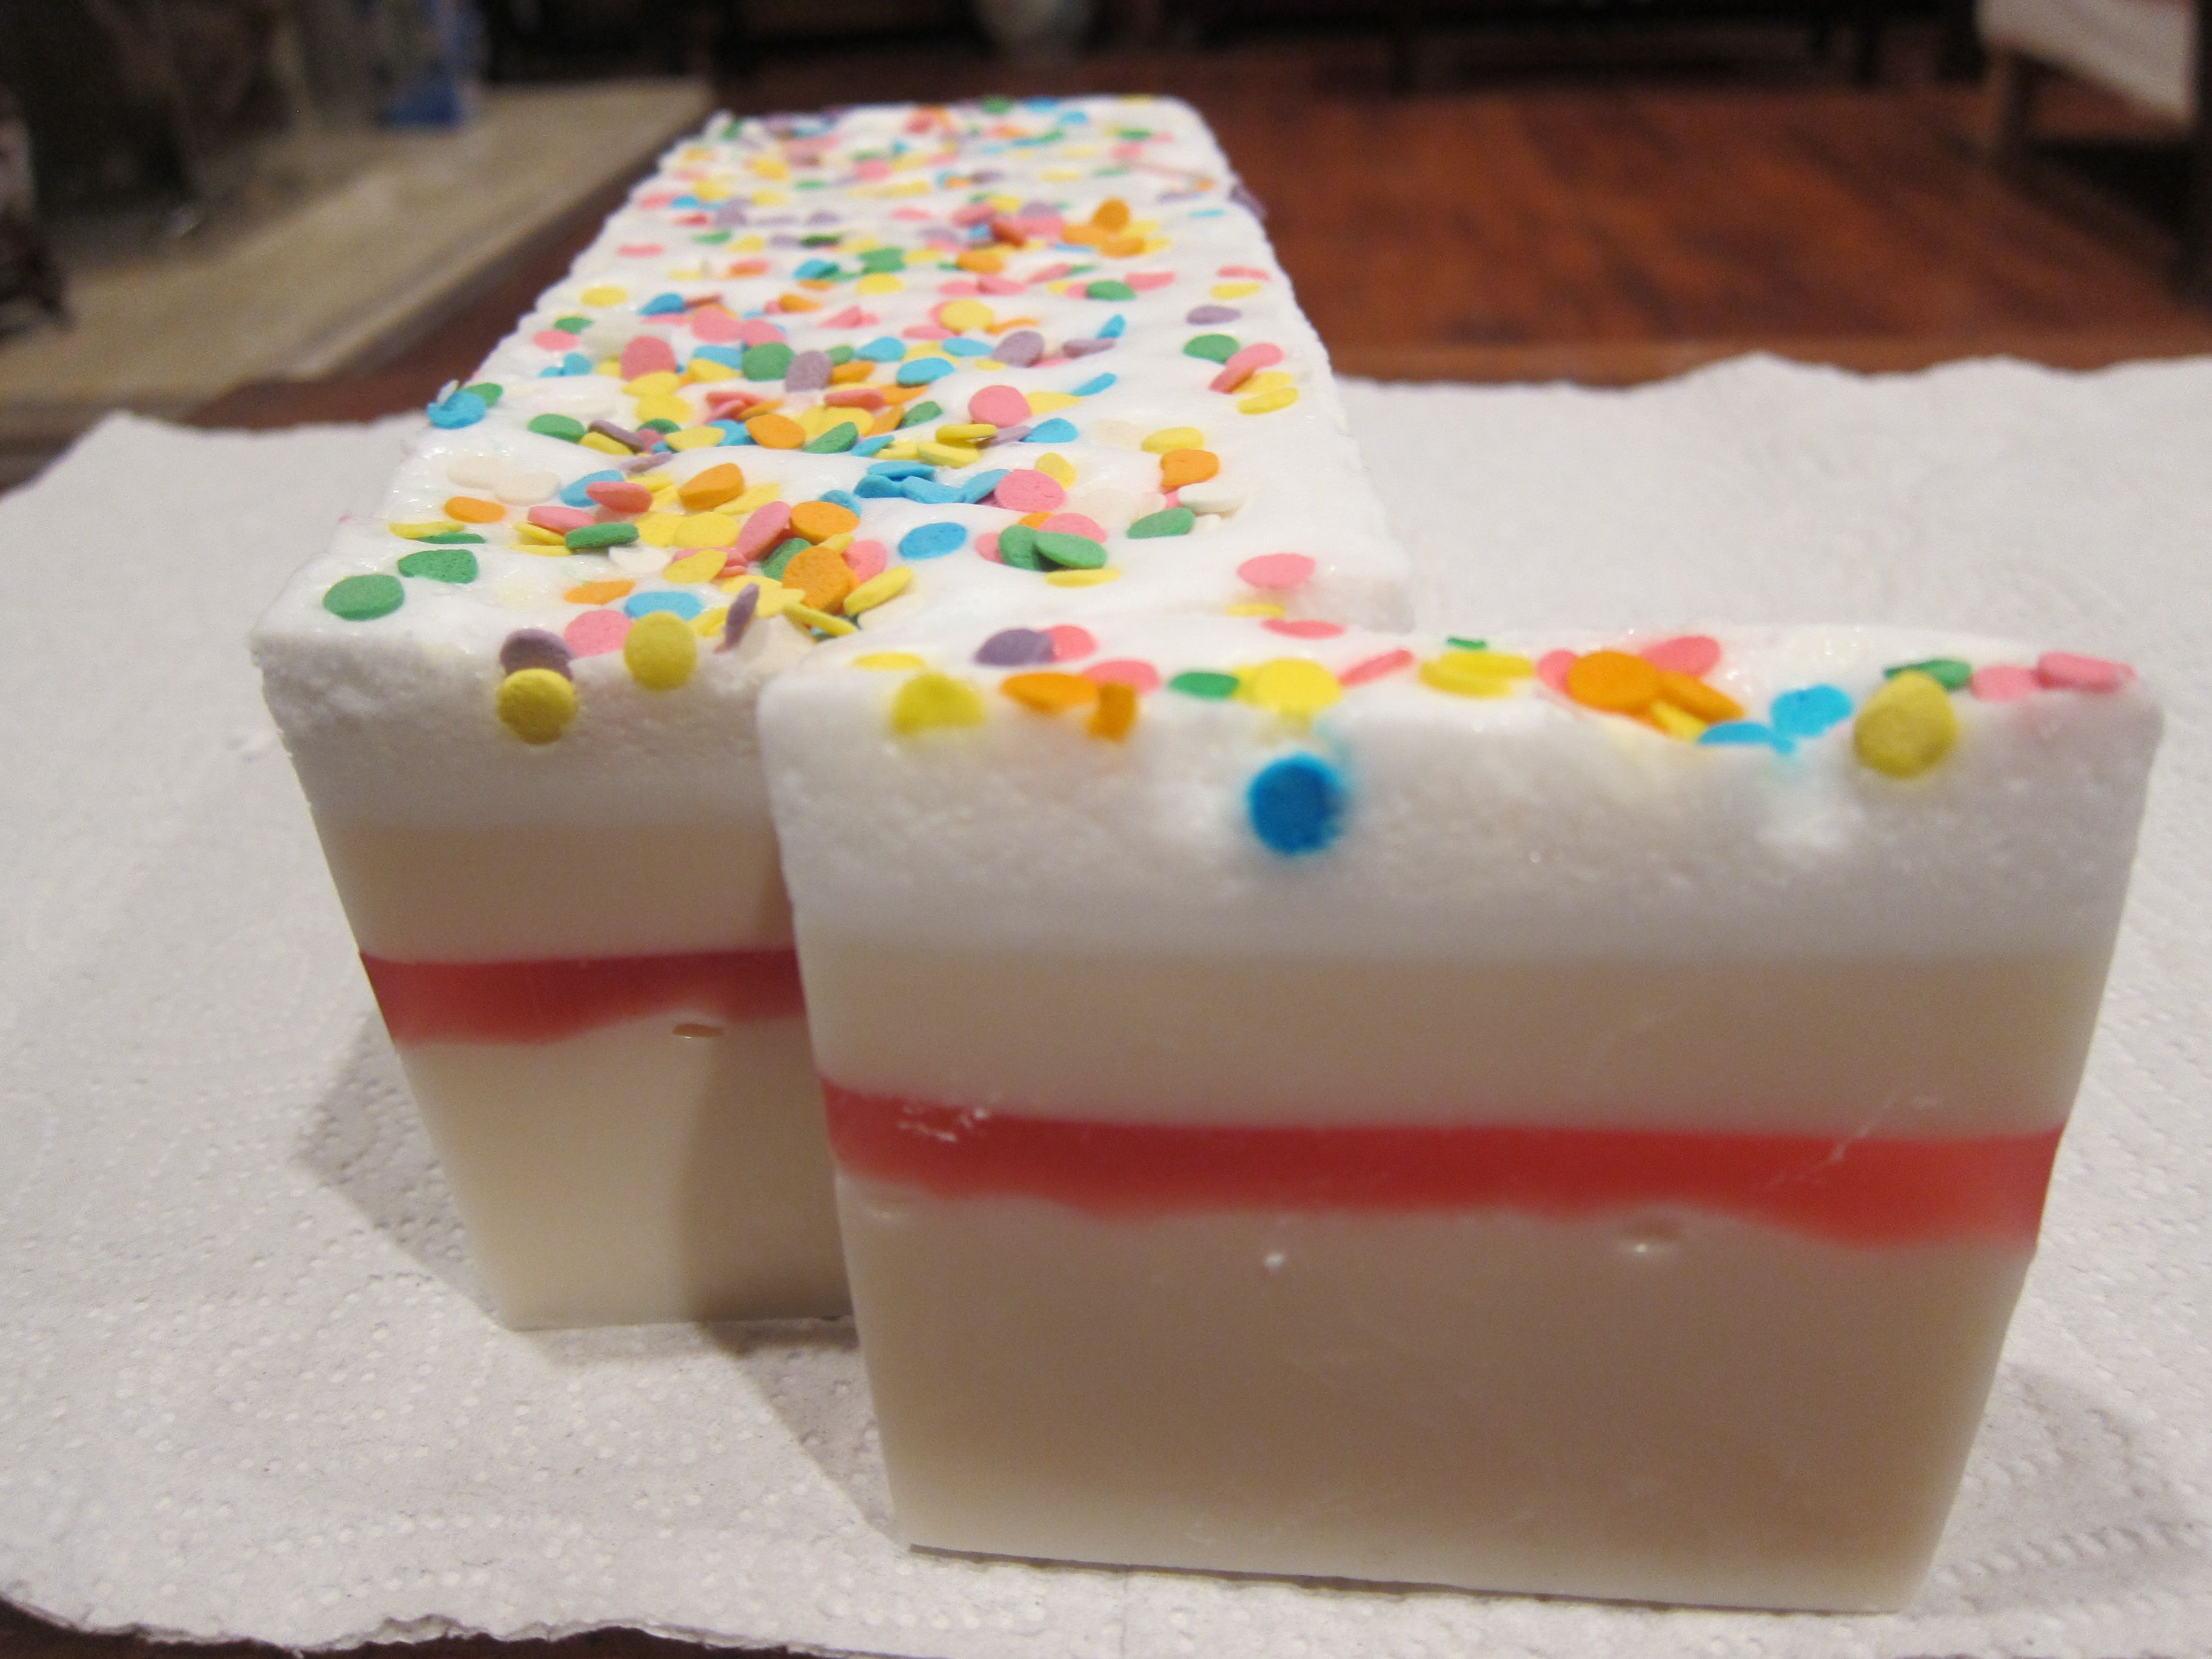 Outstanding Birthday Cake Soap Piaceresoapadventures Blogspot Com With Personalised Birthday Cards Sponlily Jamesorg